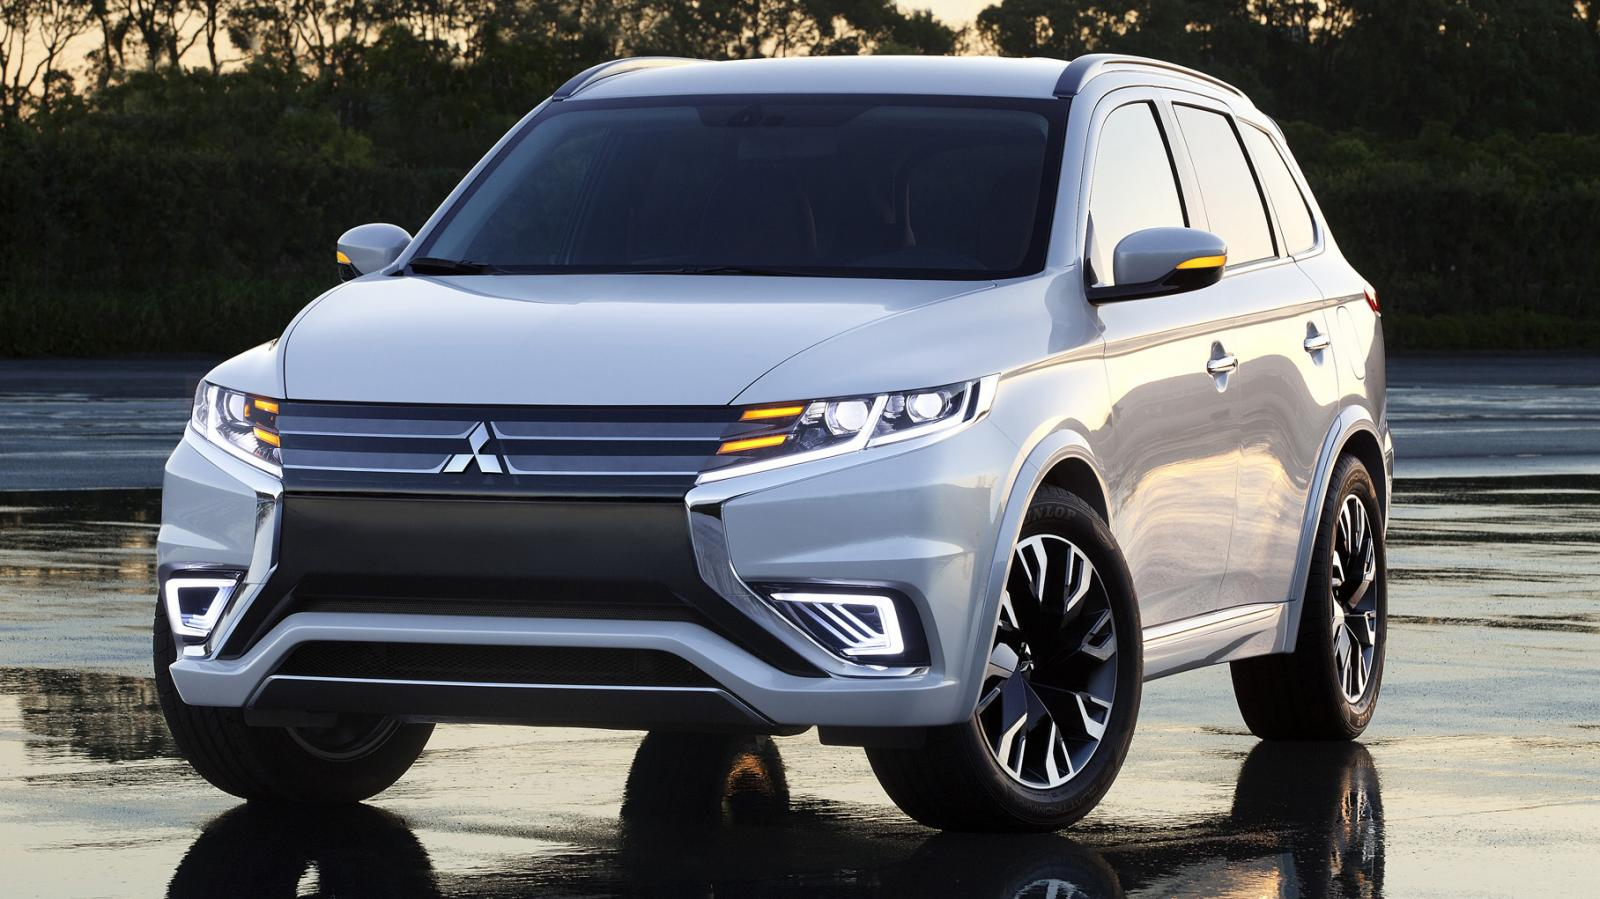 Outlander PHEV Concept-S Unveiled, is Handsome - The News ...